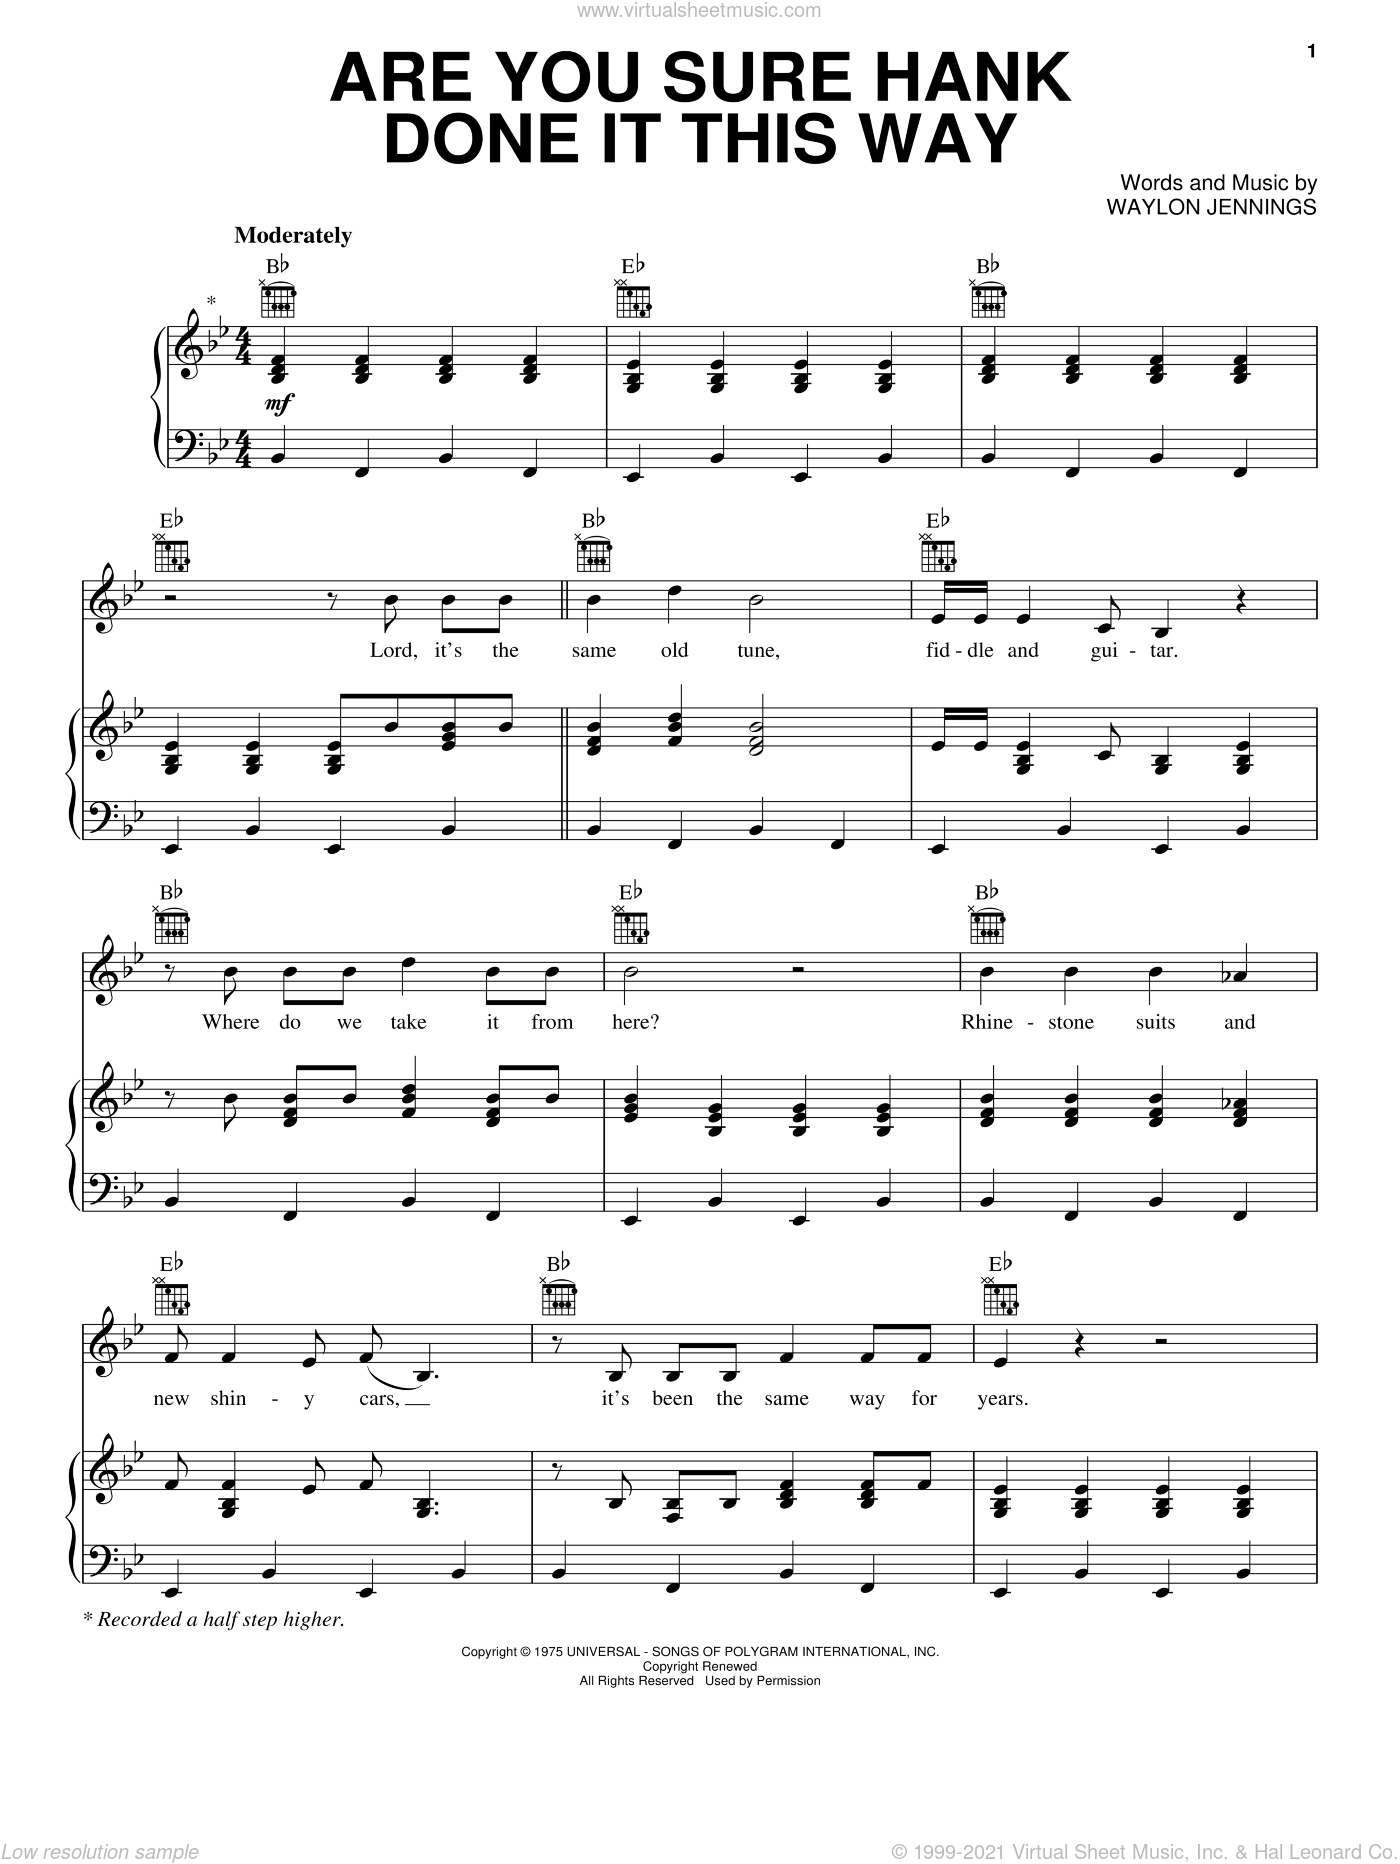 Are You Sure Hank Done It This Way sheet music for voice, piano or guitar by Waylon Jennings and Crazy Heart (Movie), intermediate skill level